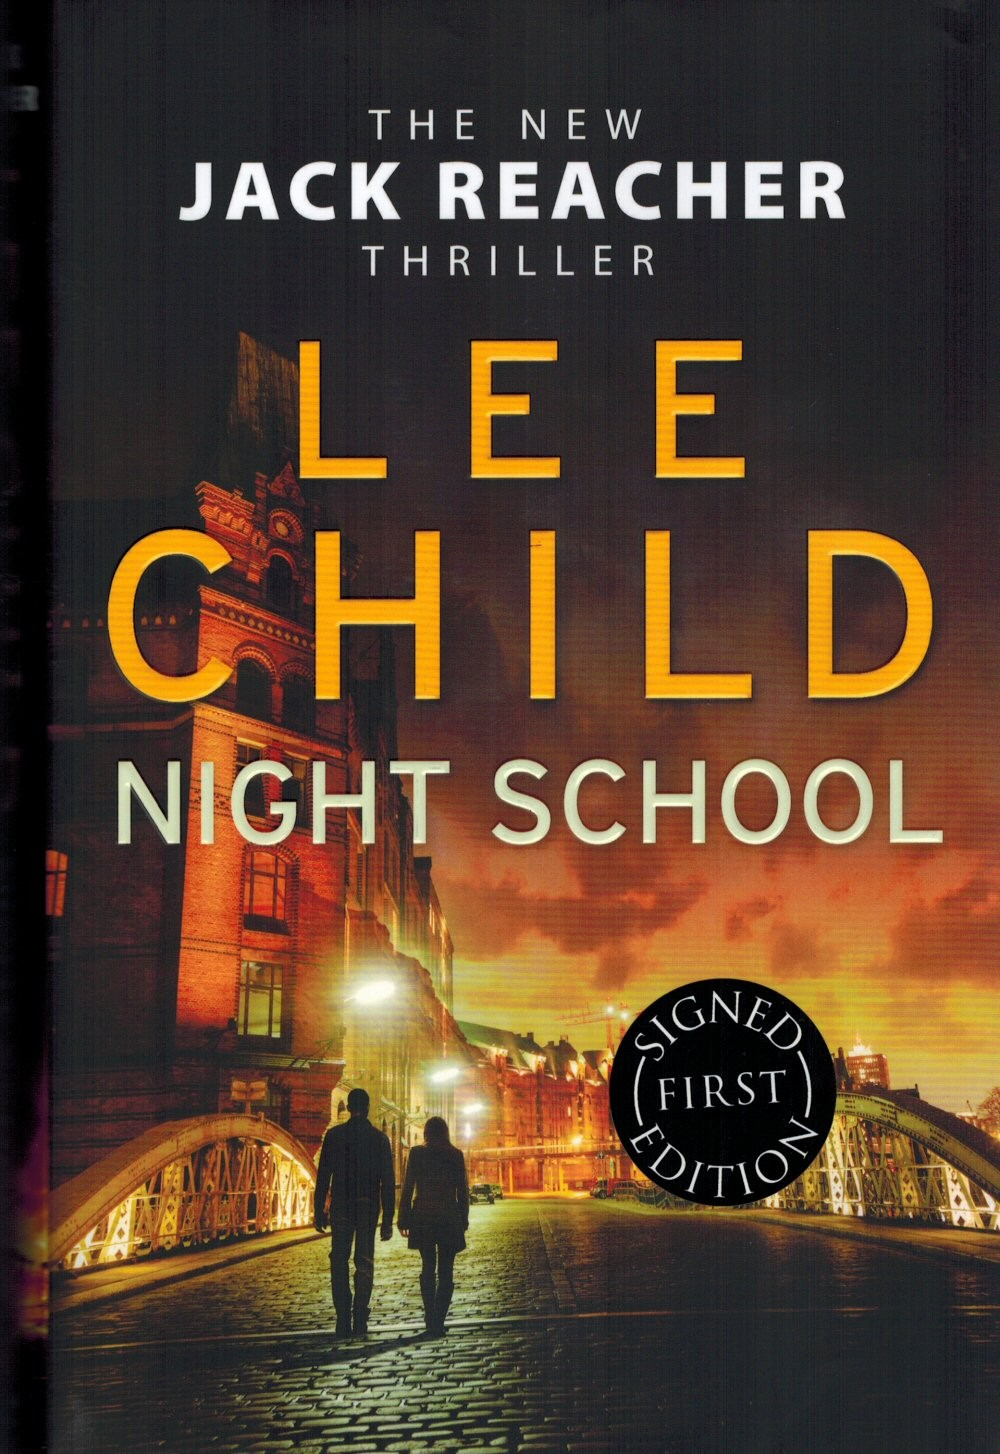 Night SchoolLee ChildRating: 4.5 / 5  - Jack Reacher novel #21Lee ChildRating: 4.5 / 5